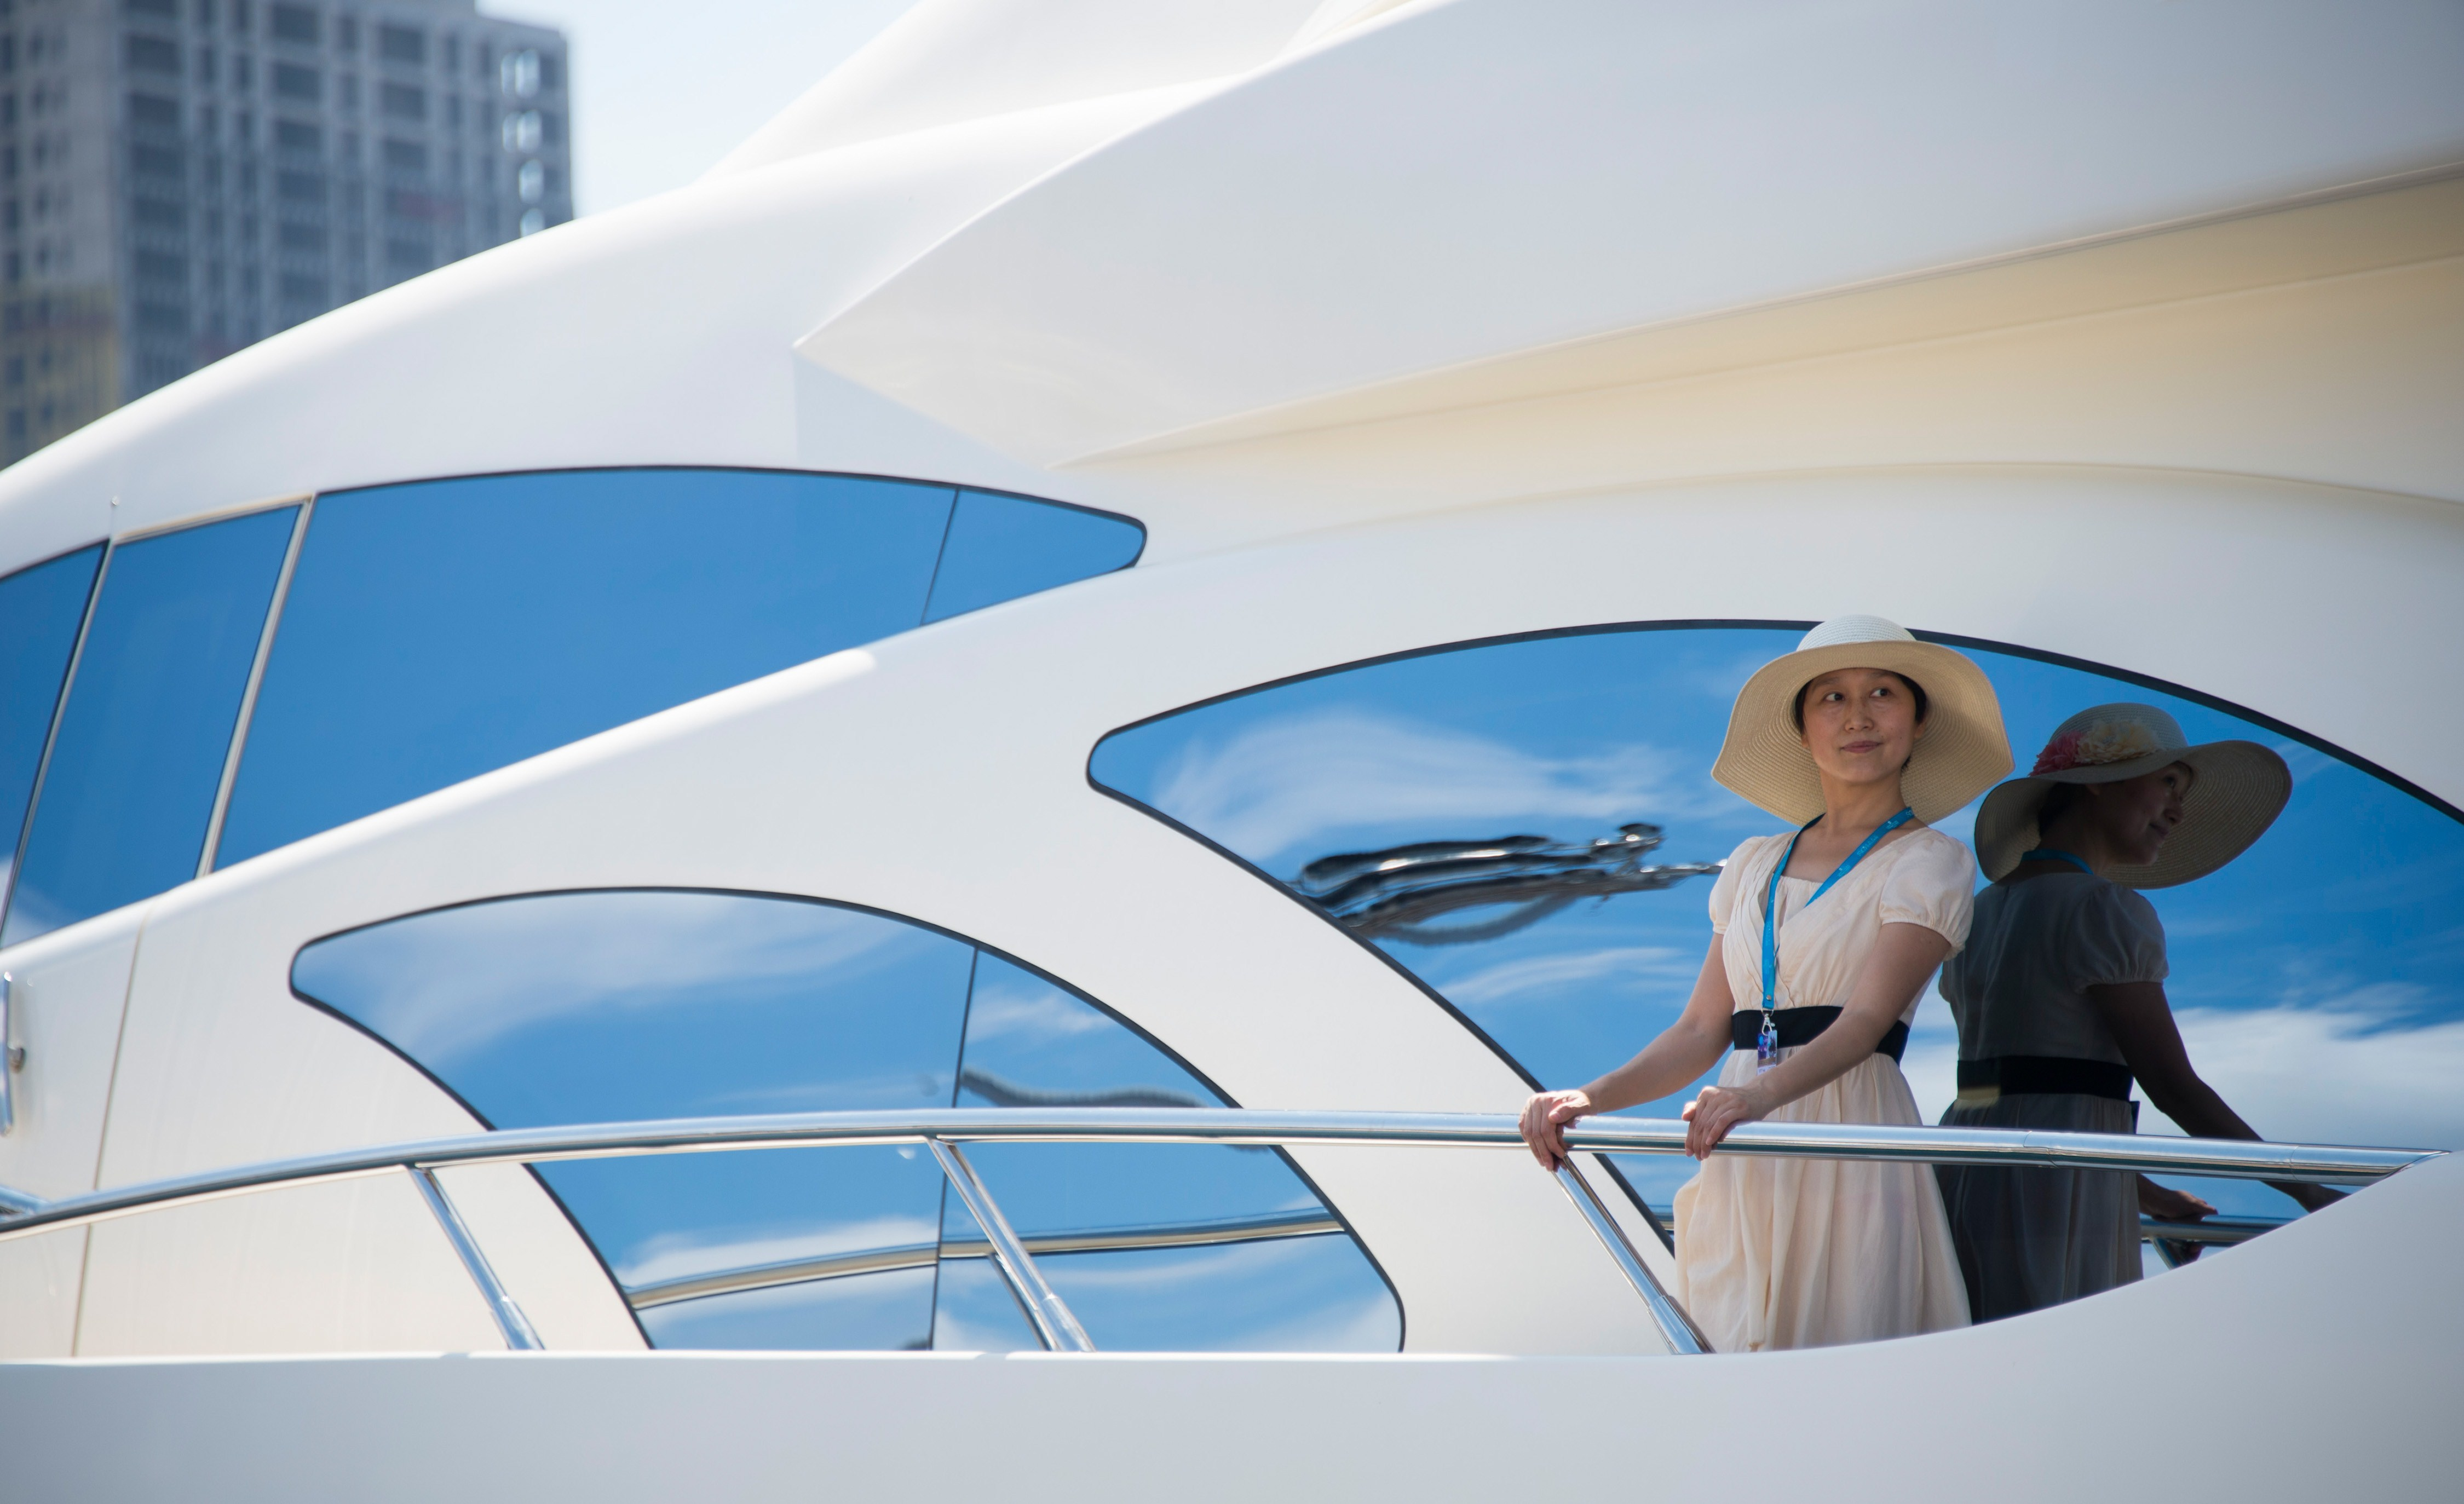 A woman on a luxury yacht at a boat show at the port in the northeastern Chinese city of Dalian on July 5, 2014. Chinese buyers are being targeted by the world's yacht builders, whose vessels can cost as much as 100 million USD. (JOHANNES EISELE/AFP/Getty Images)